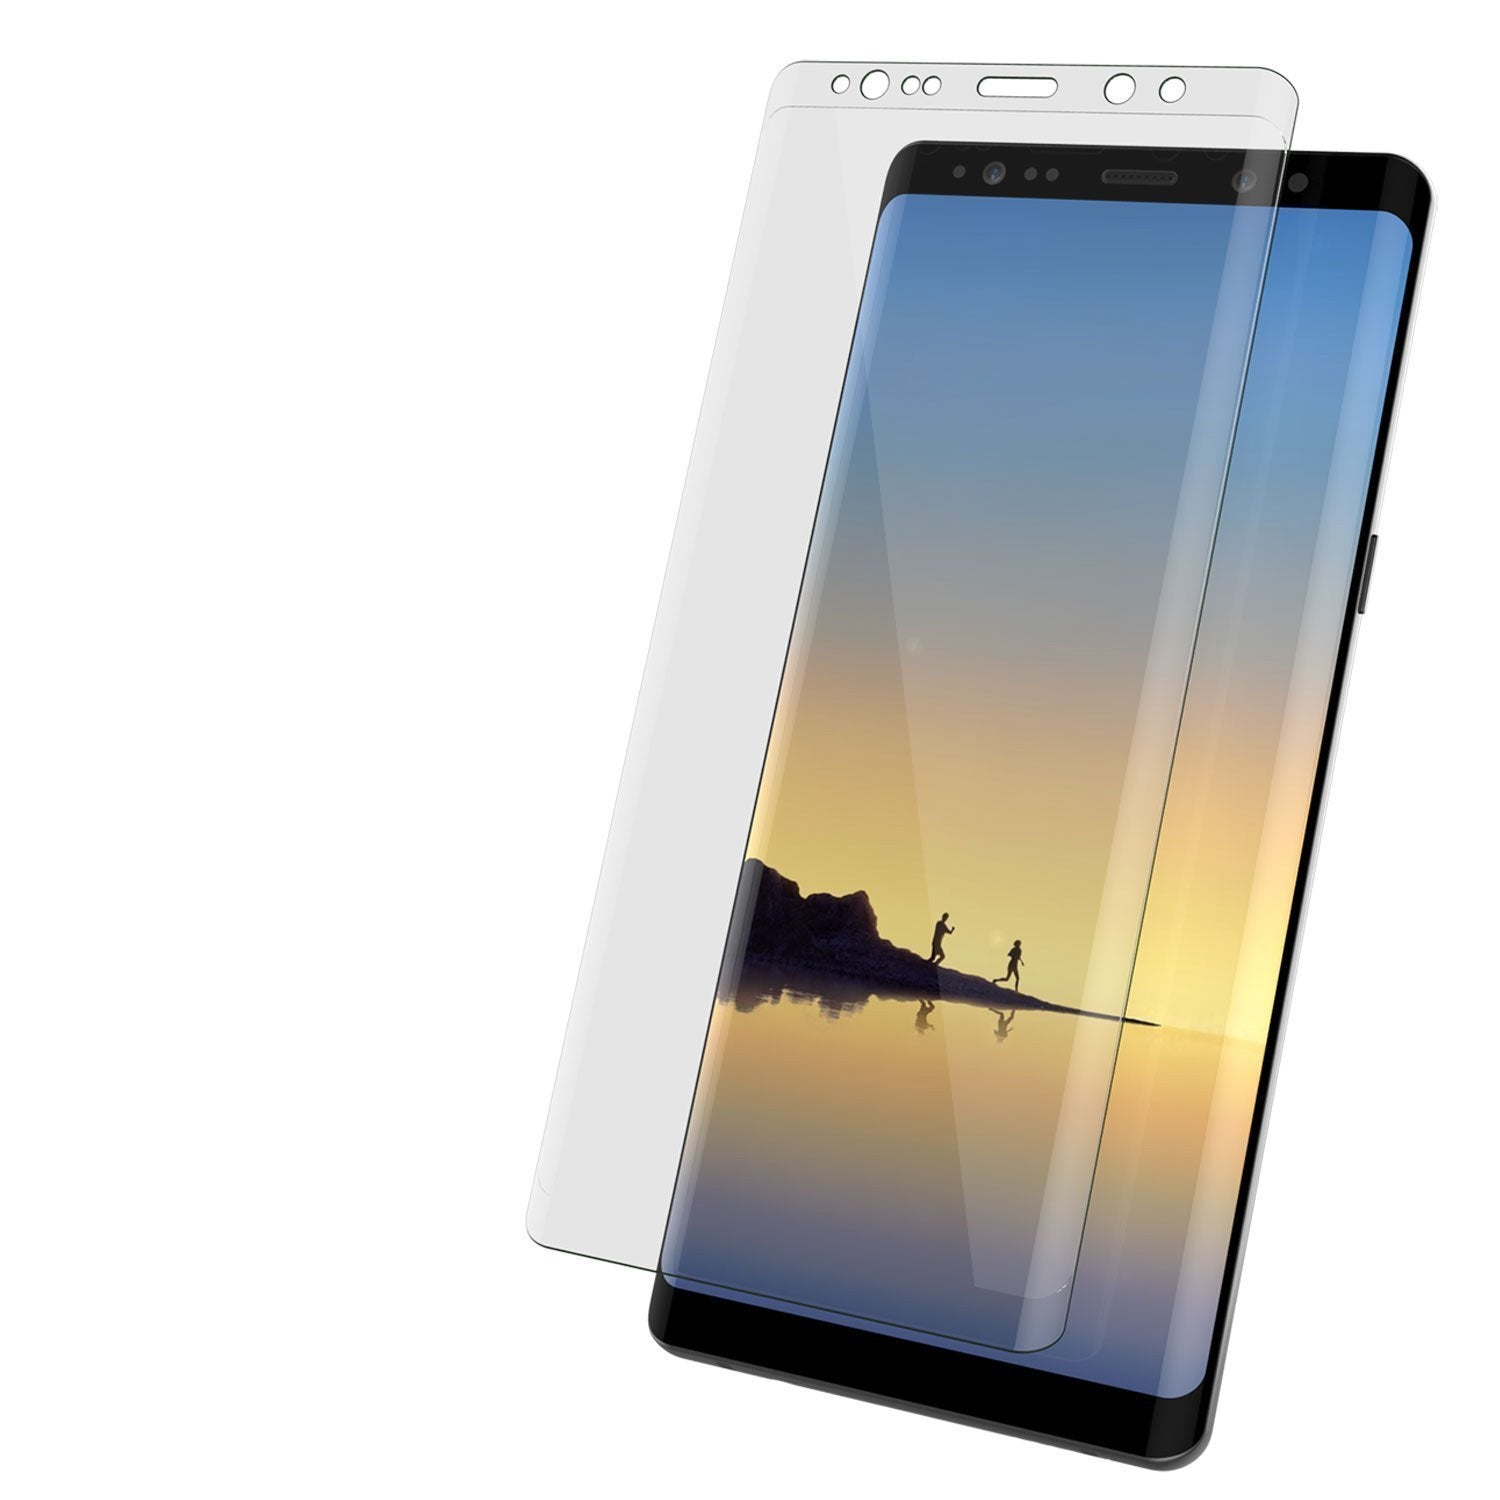 Galaxy note 10 Clear Punkcase Glass SHIELD Tempered Glass Screen Protector 0.33mm Thick 9H Glass